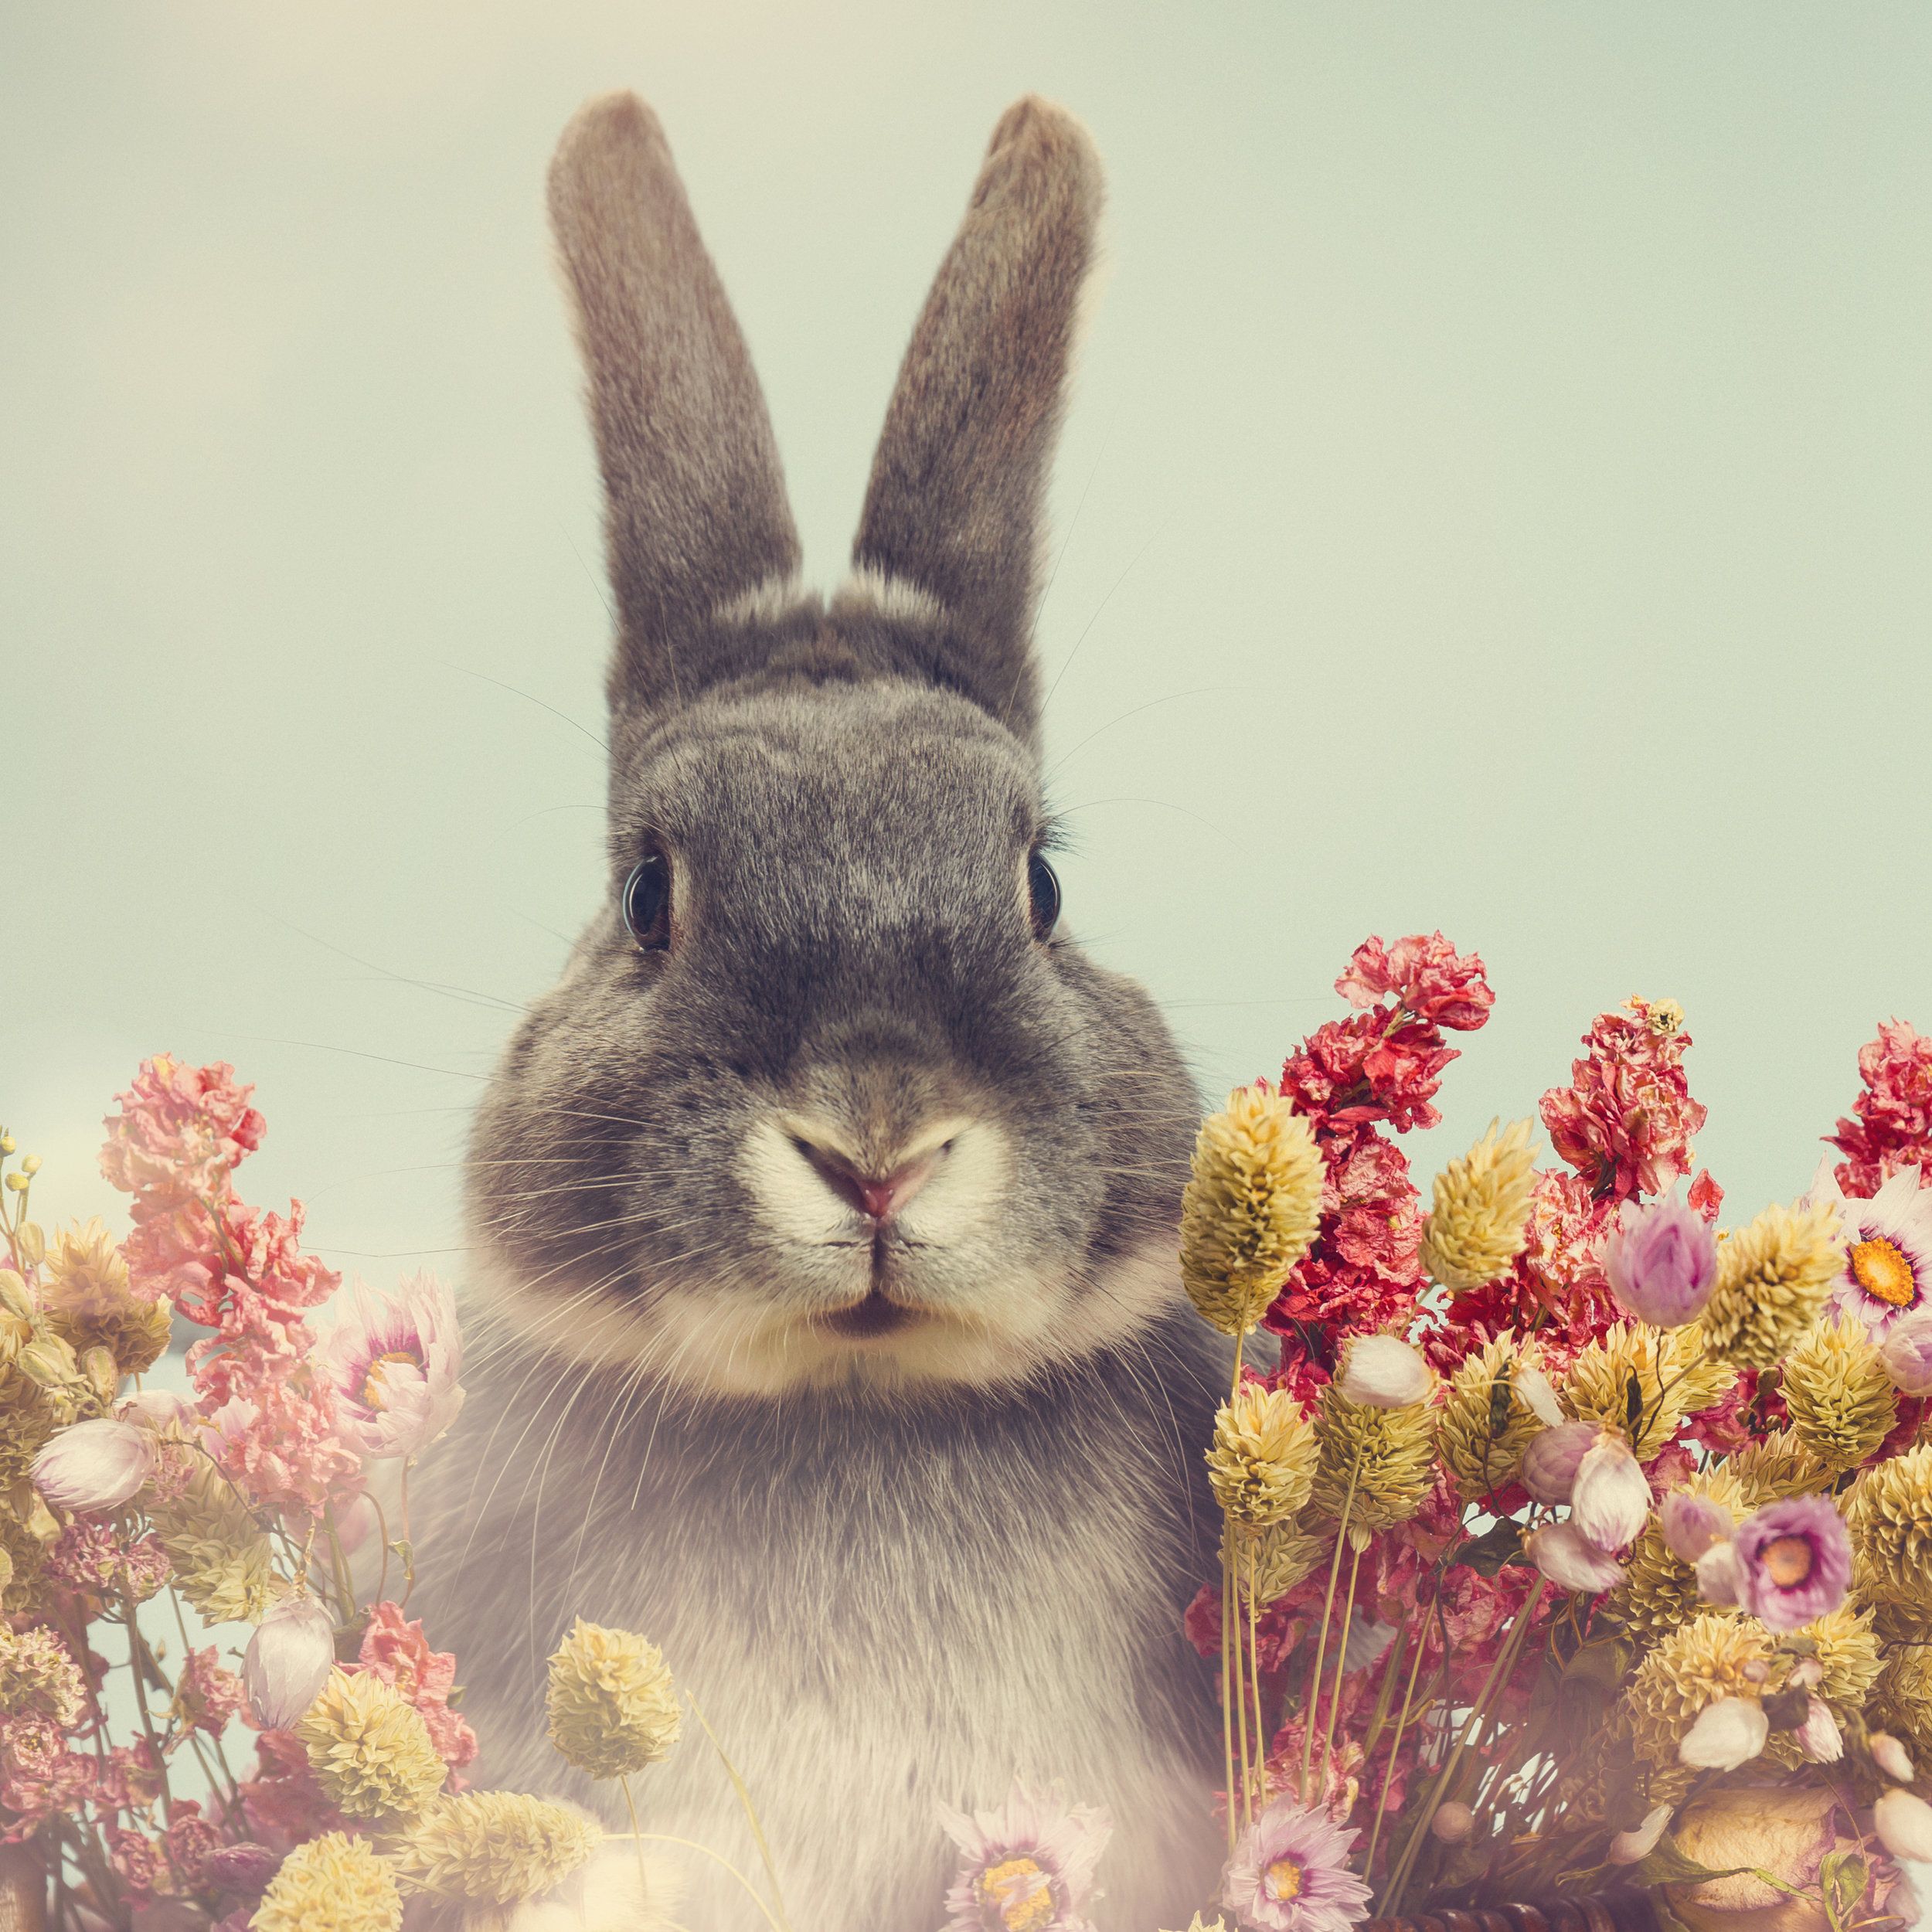 Cruelty Free   TRUE Skincare products have not, and never will be, tested on animals. We are proud to be a Leaping Bunny approved brand by Cruelty Free International.